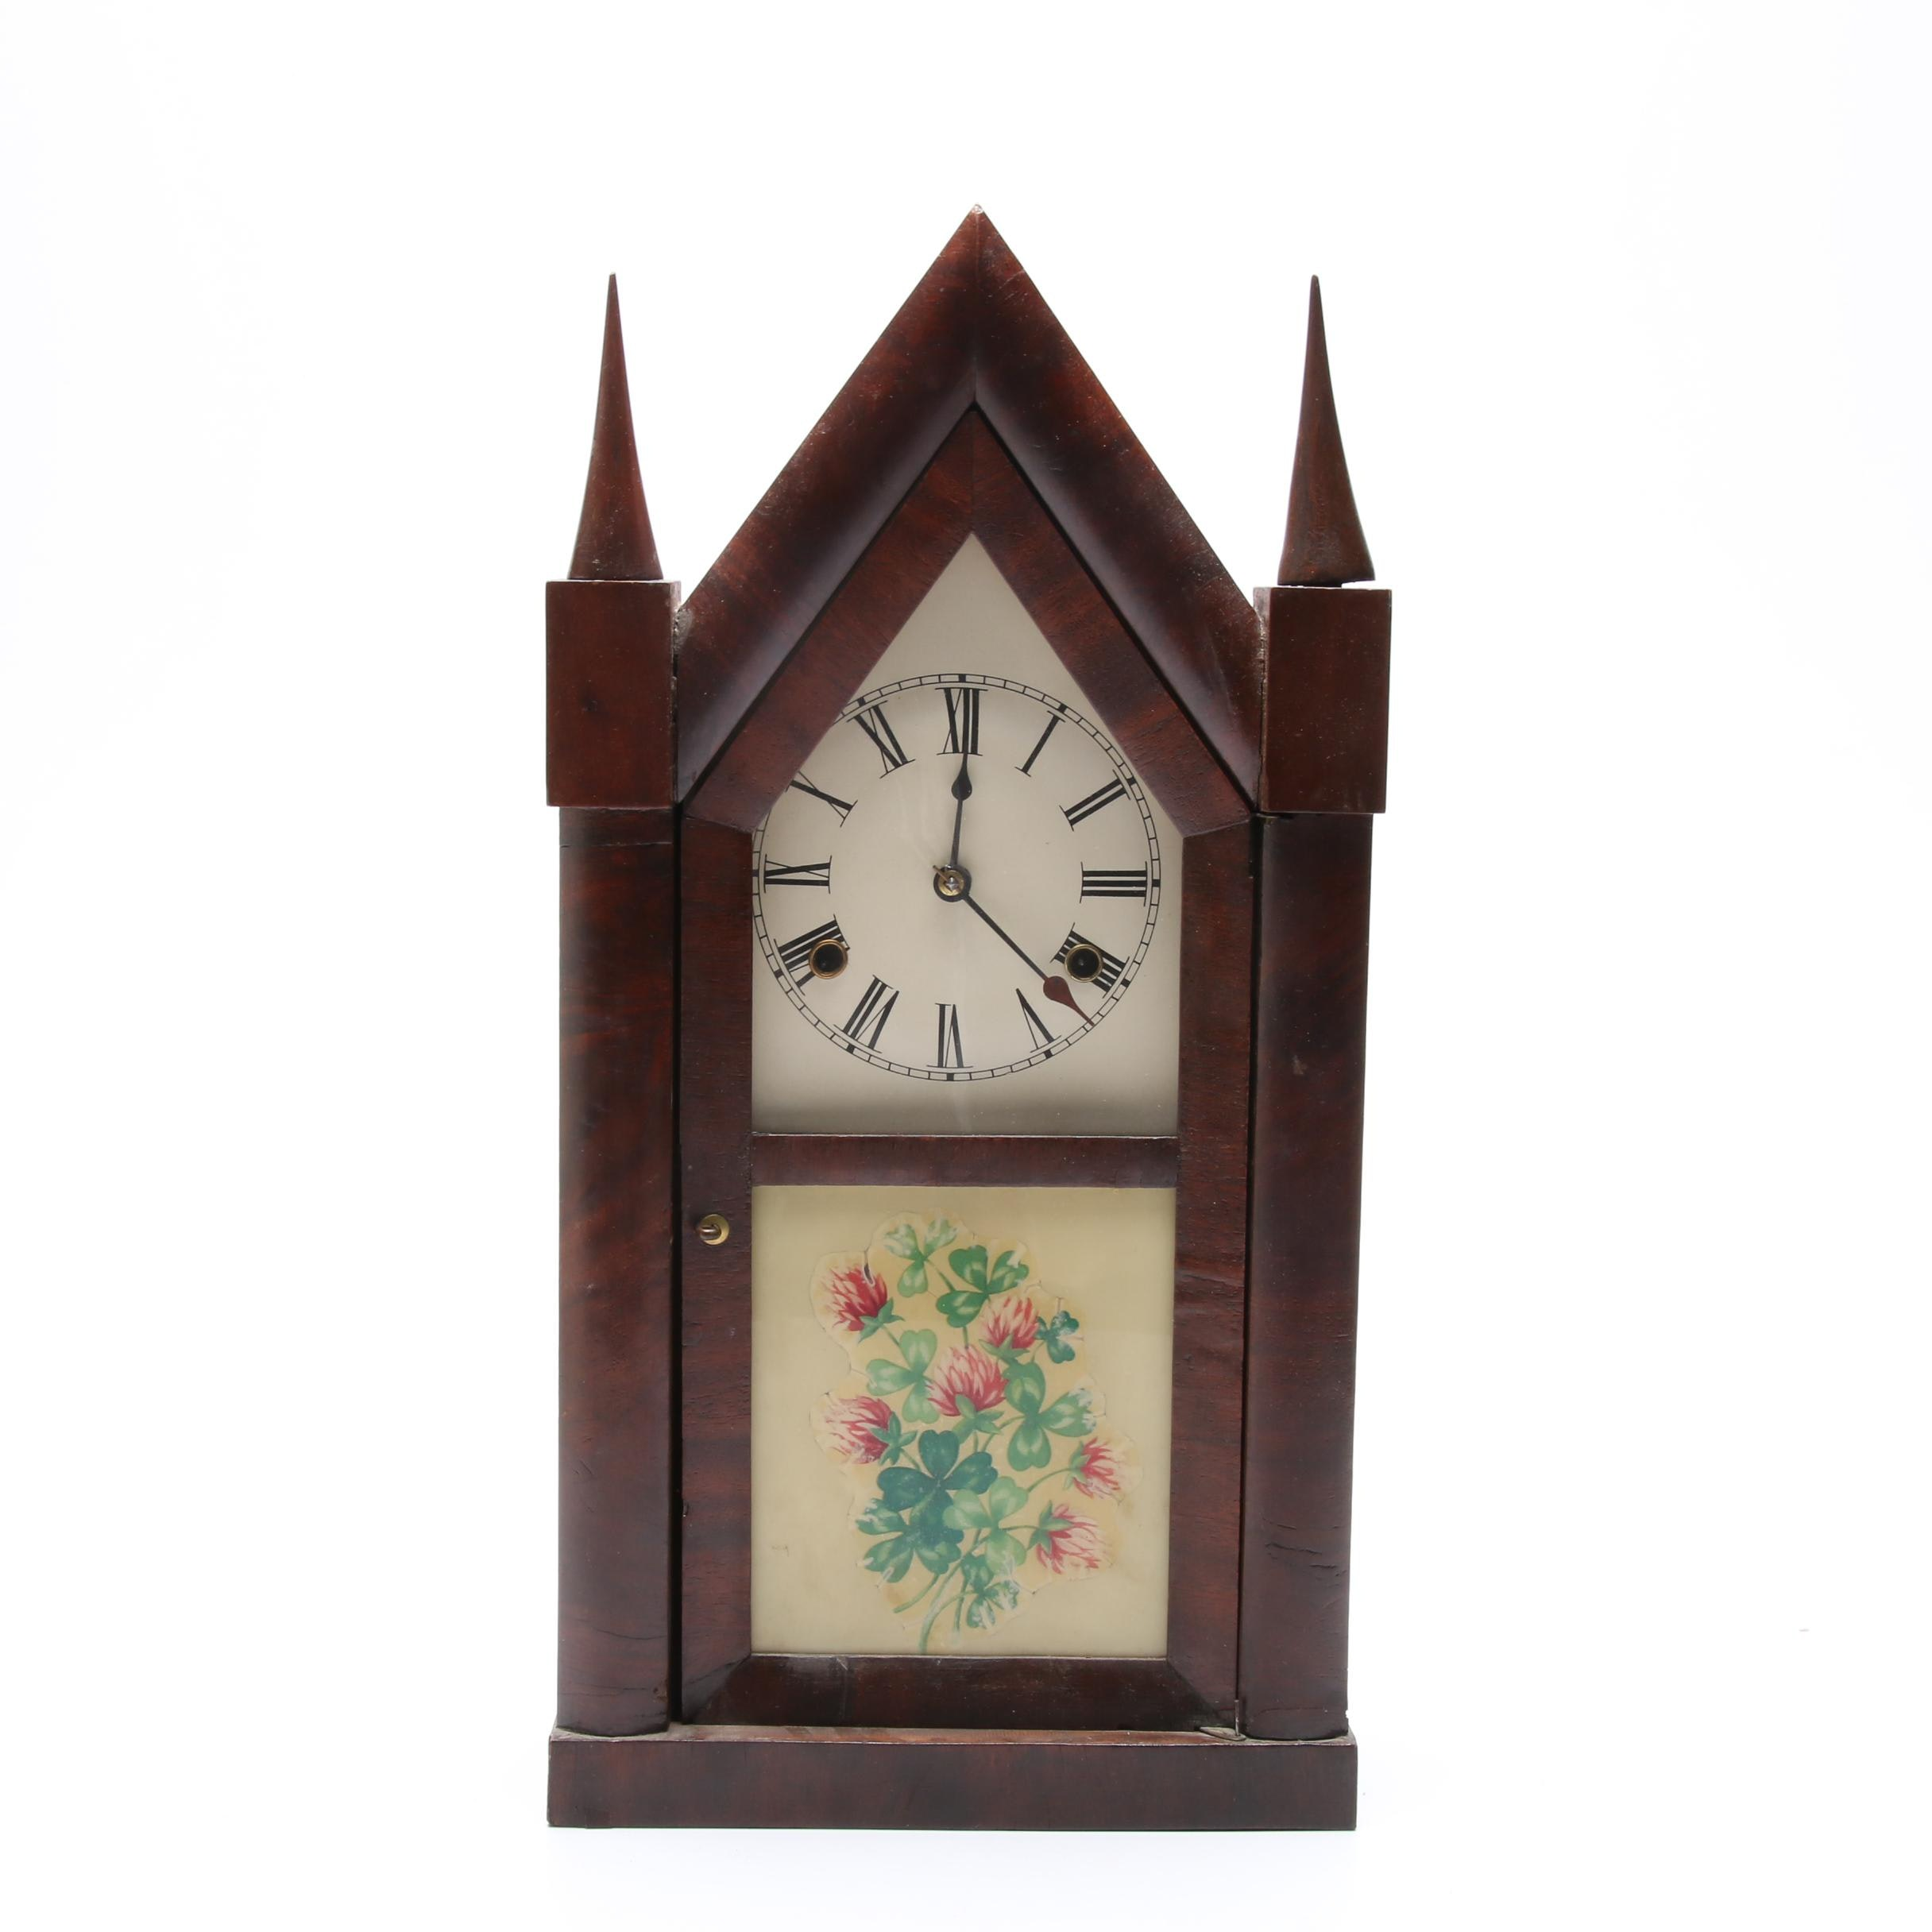 Chauncey Jerome Eight-Day Steeple Mantel Clock, Early to Mid 19th Century